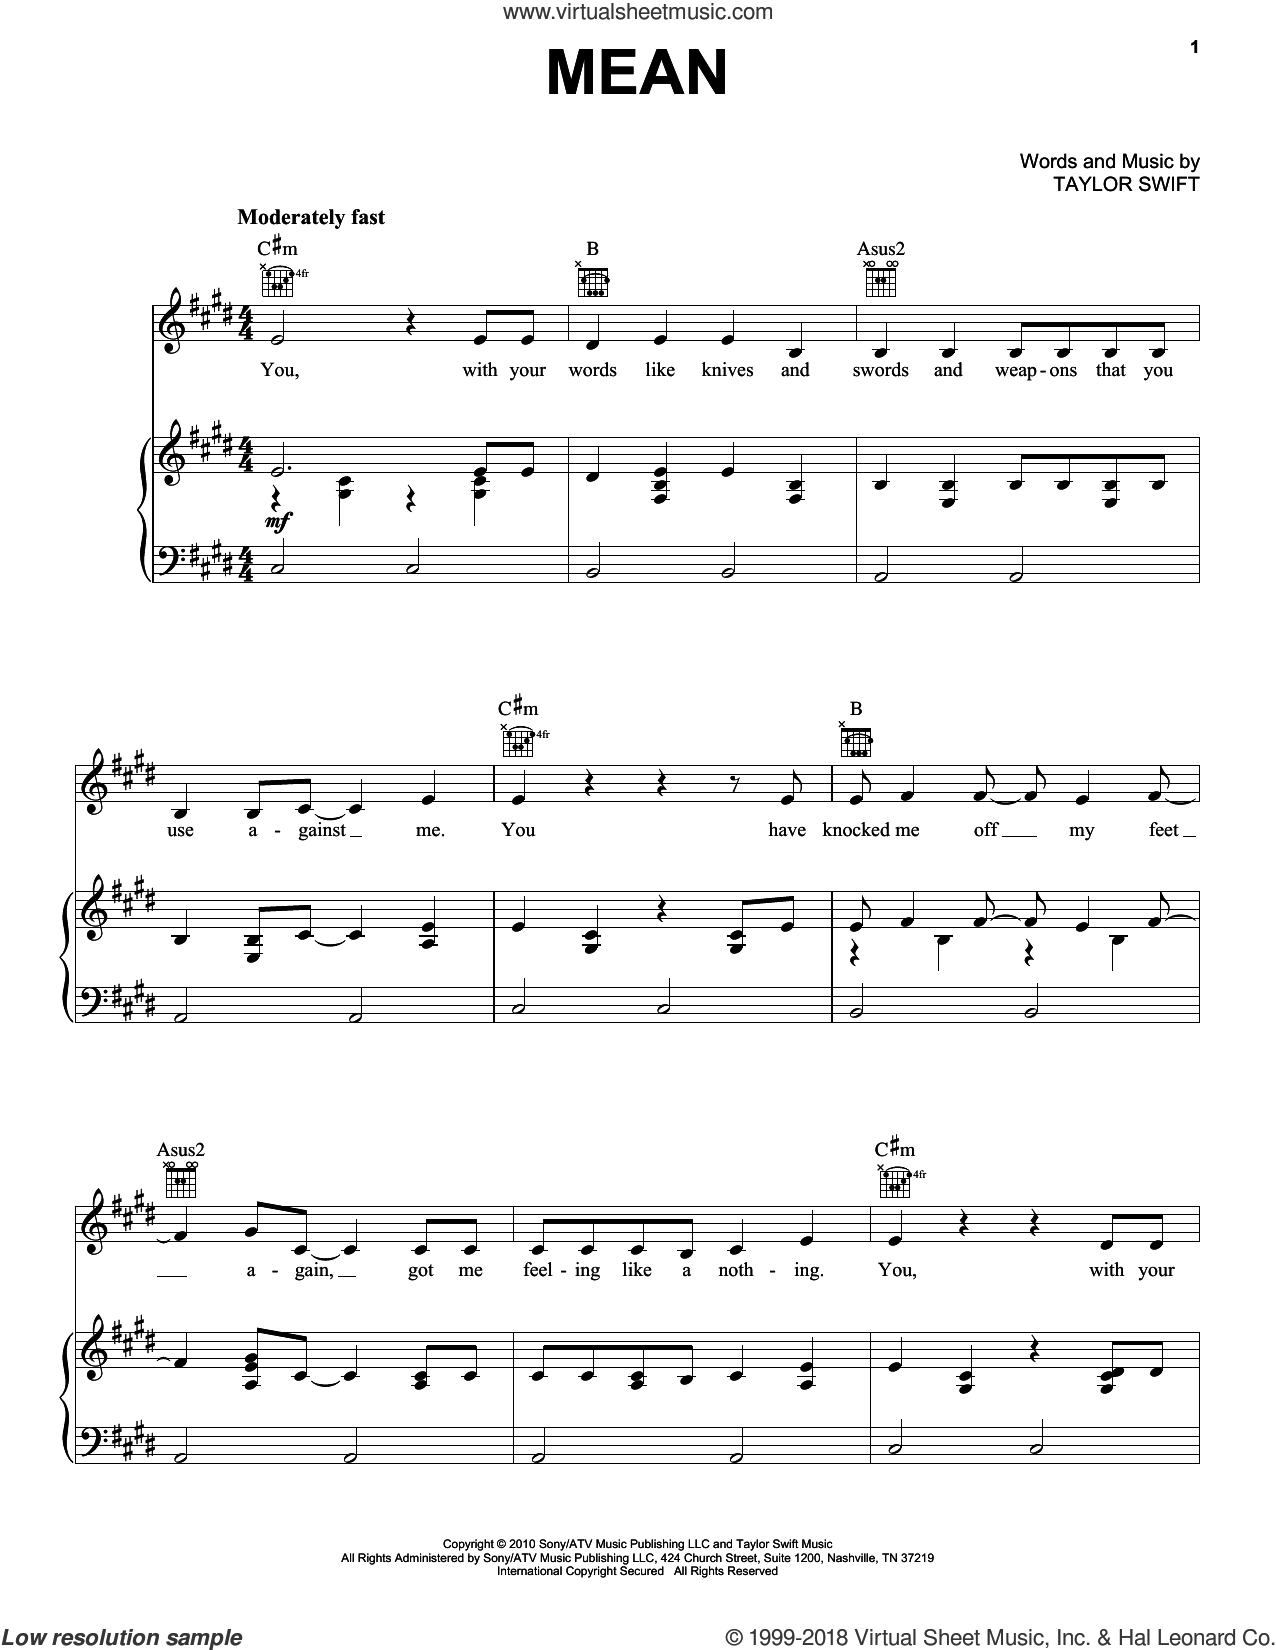 Taylor Swift Hits (complete set of parts) sheet music for voice, piano or guitar by Taylor Swift, Liz Rose, Max Martin and Shellback, intermediate skill level